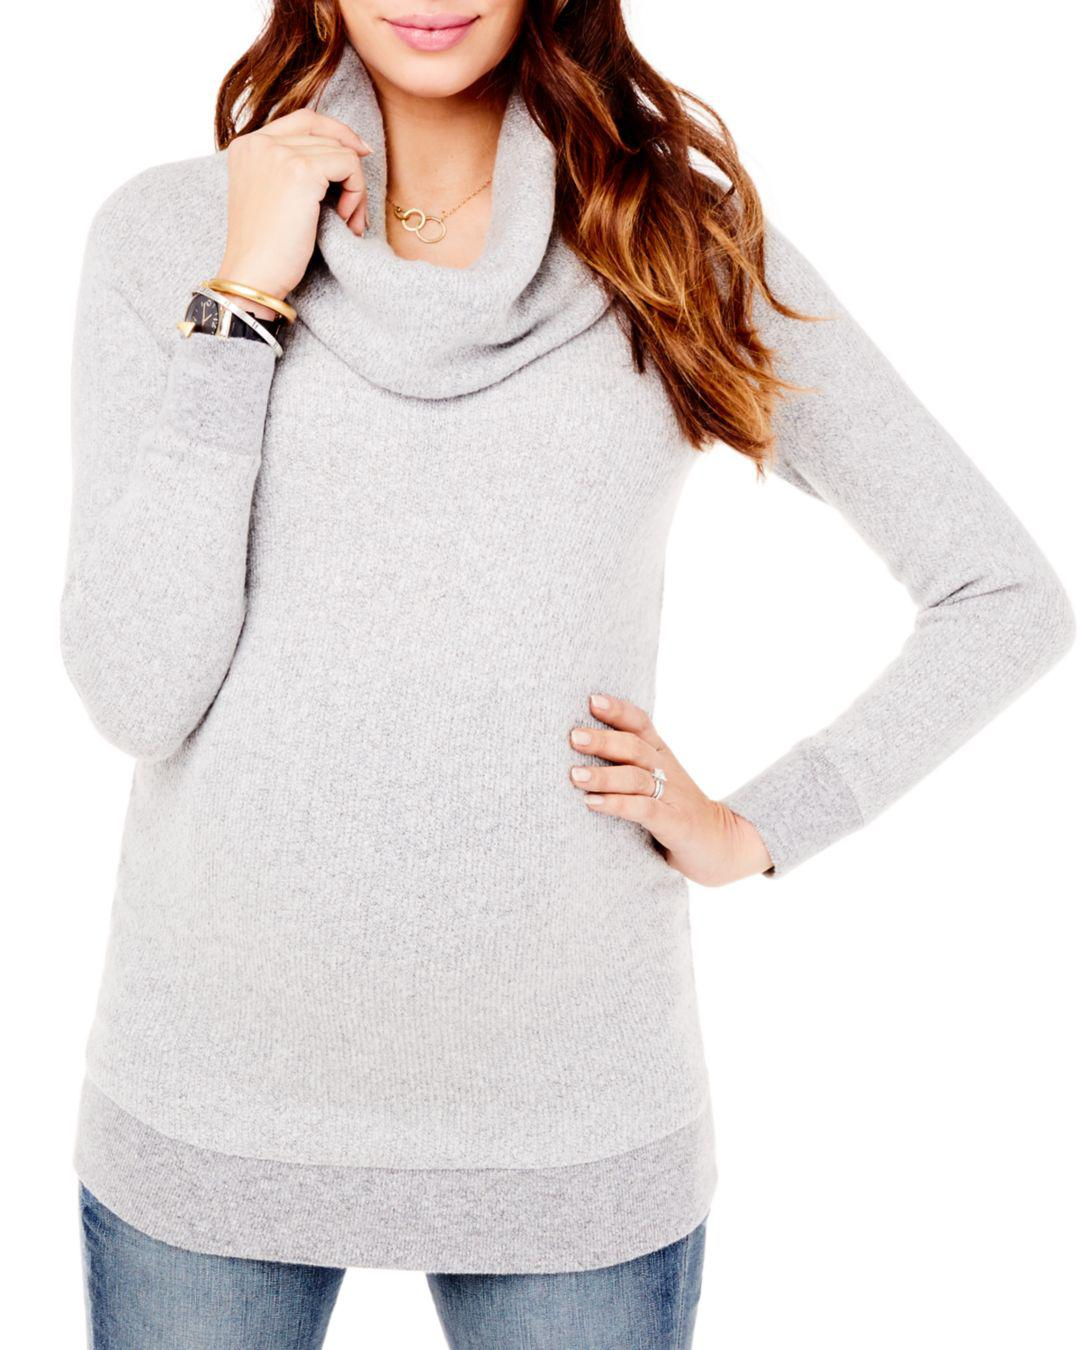 043e84d0f6abf Lyst - Ingrid & Isabel Maternity Cowl Neck Sweater in Gray